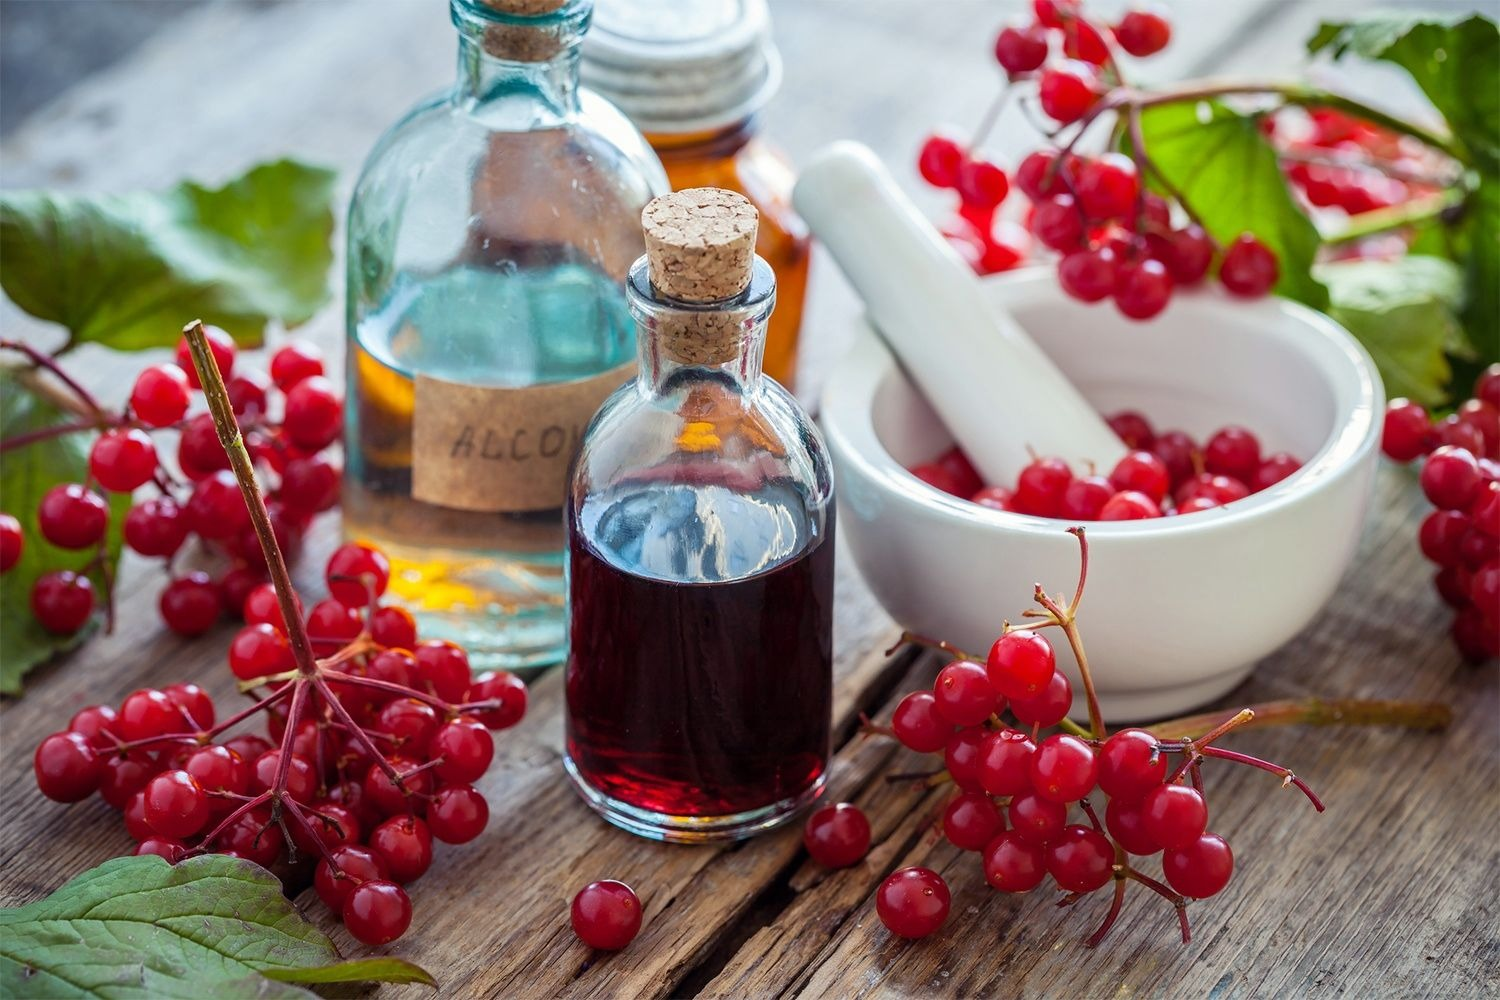 Cranberry Extract Interactions